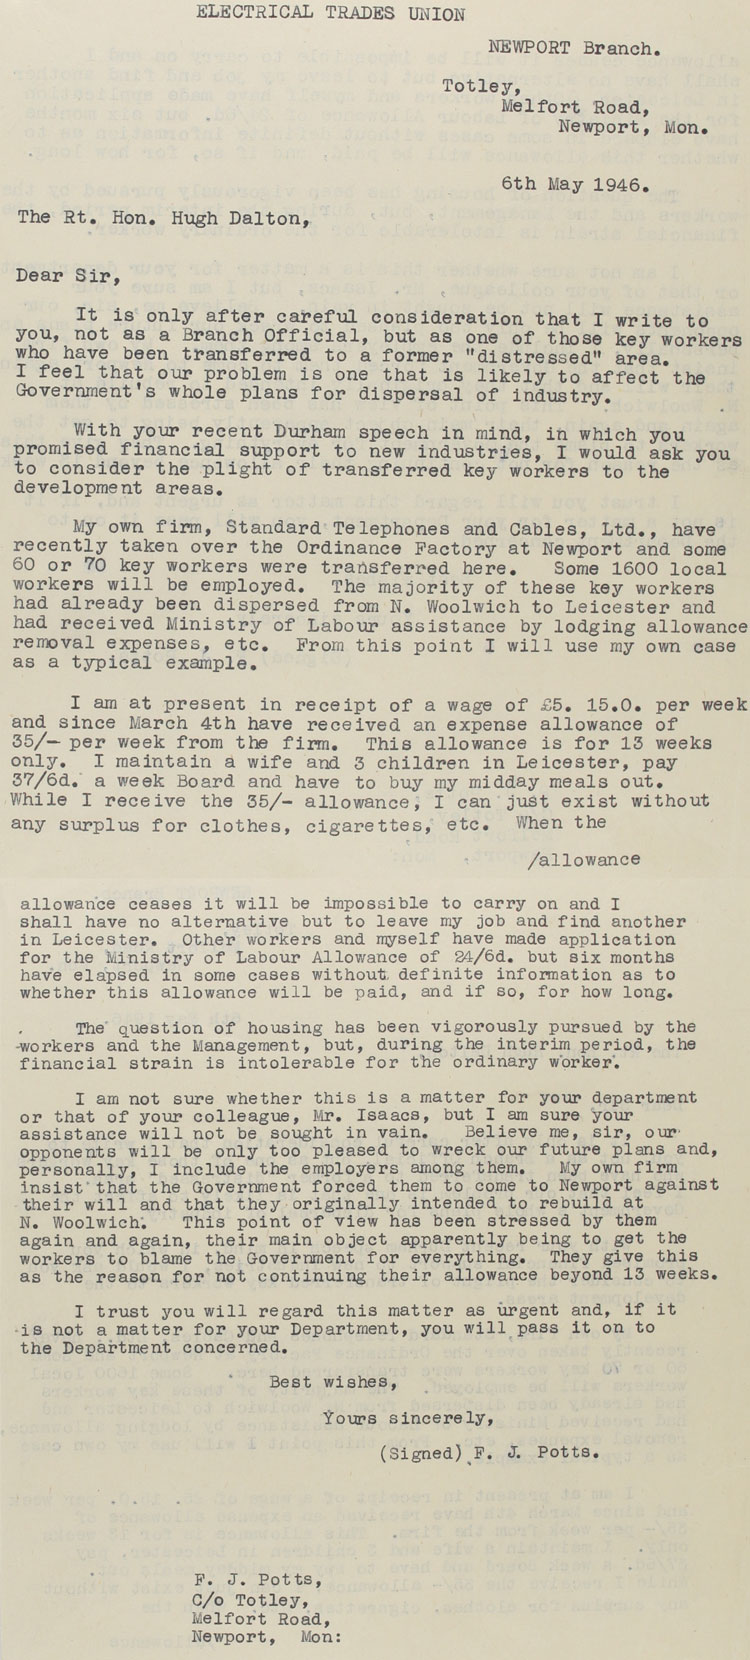 Letter to Hugh Dalton, Chancellor of the Exchequer, from a member of the Electrical Trades Union, Newport branch. The Chancellor requested the Ministry of Labour to reply, 6th May, 1946 (T 161/1367)